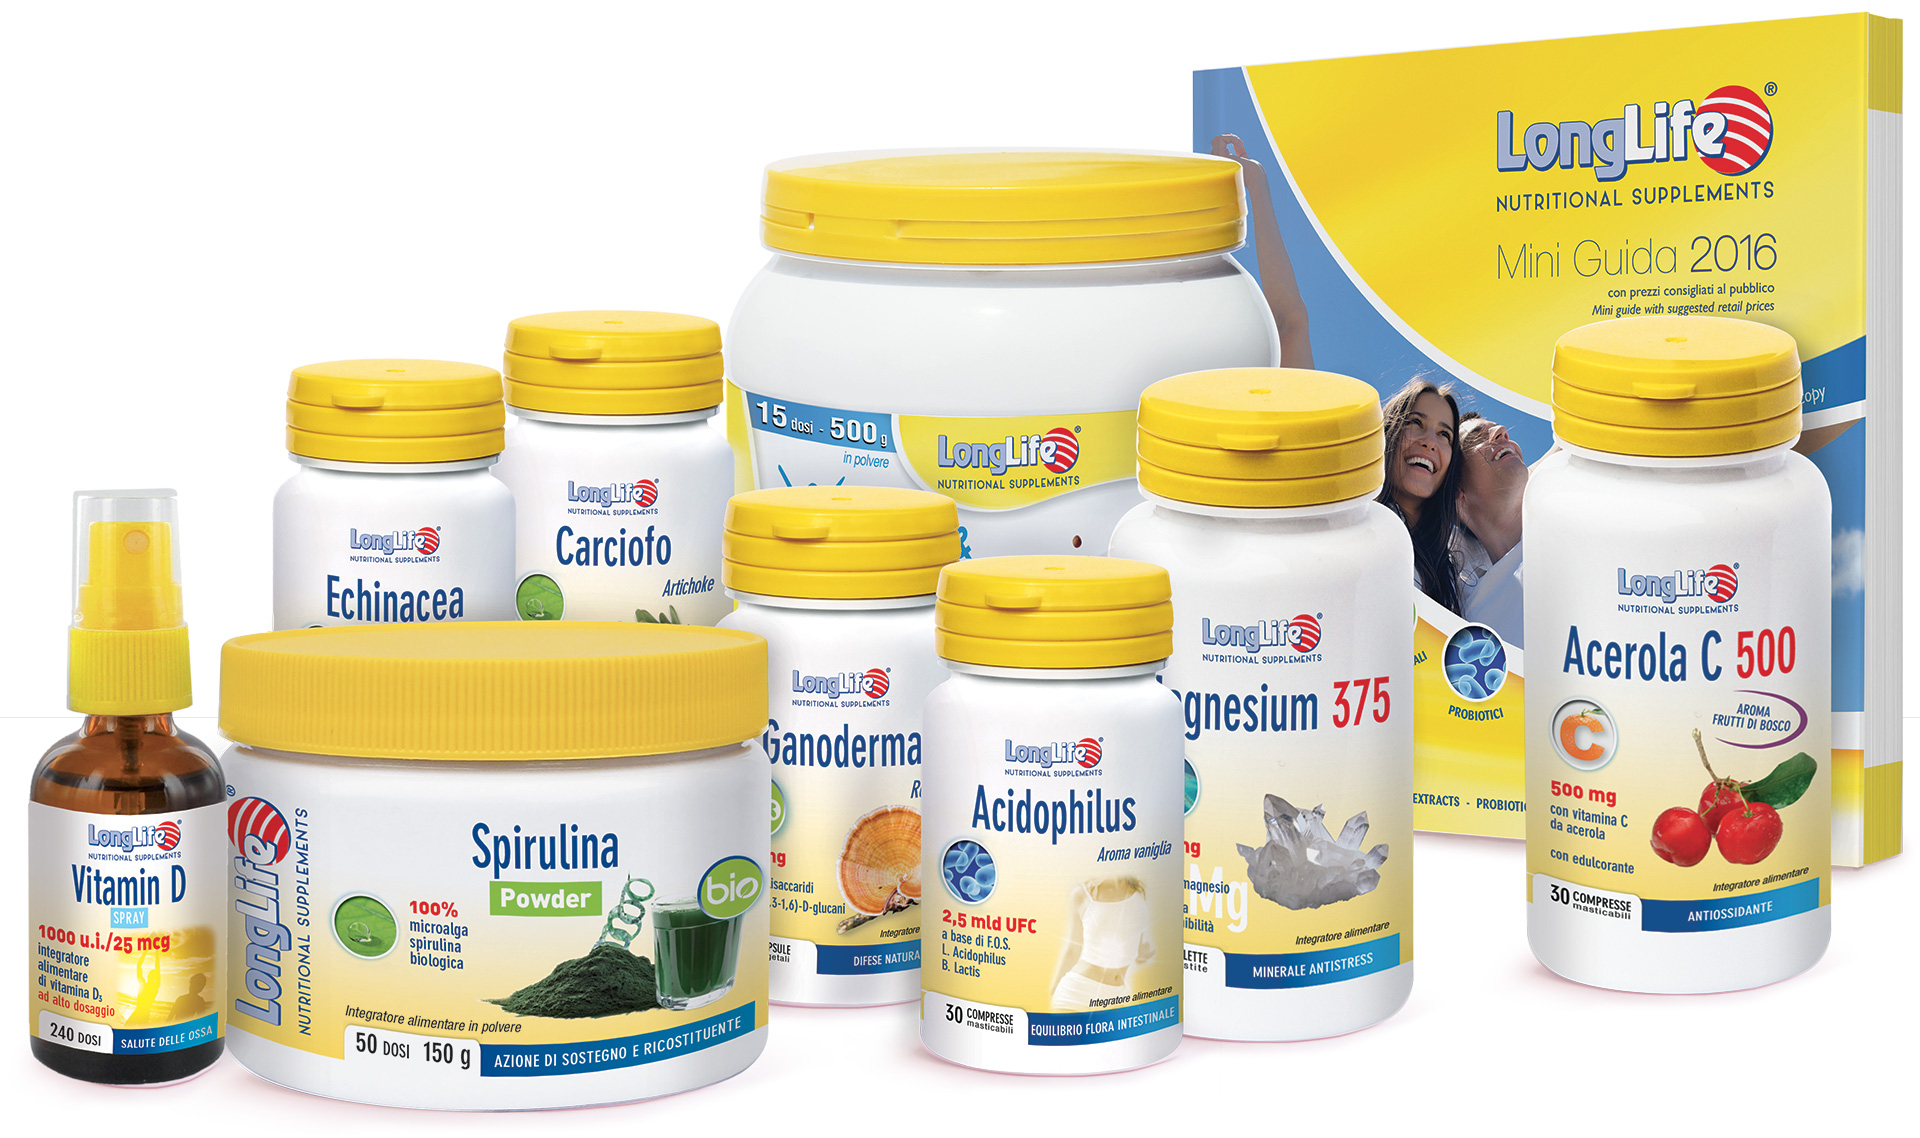 LongLife Nutritional Supplements